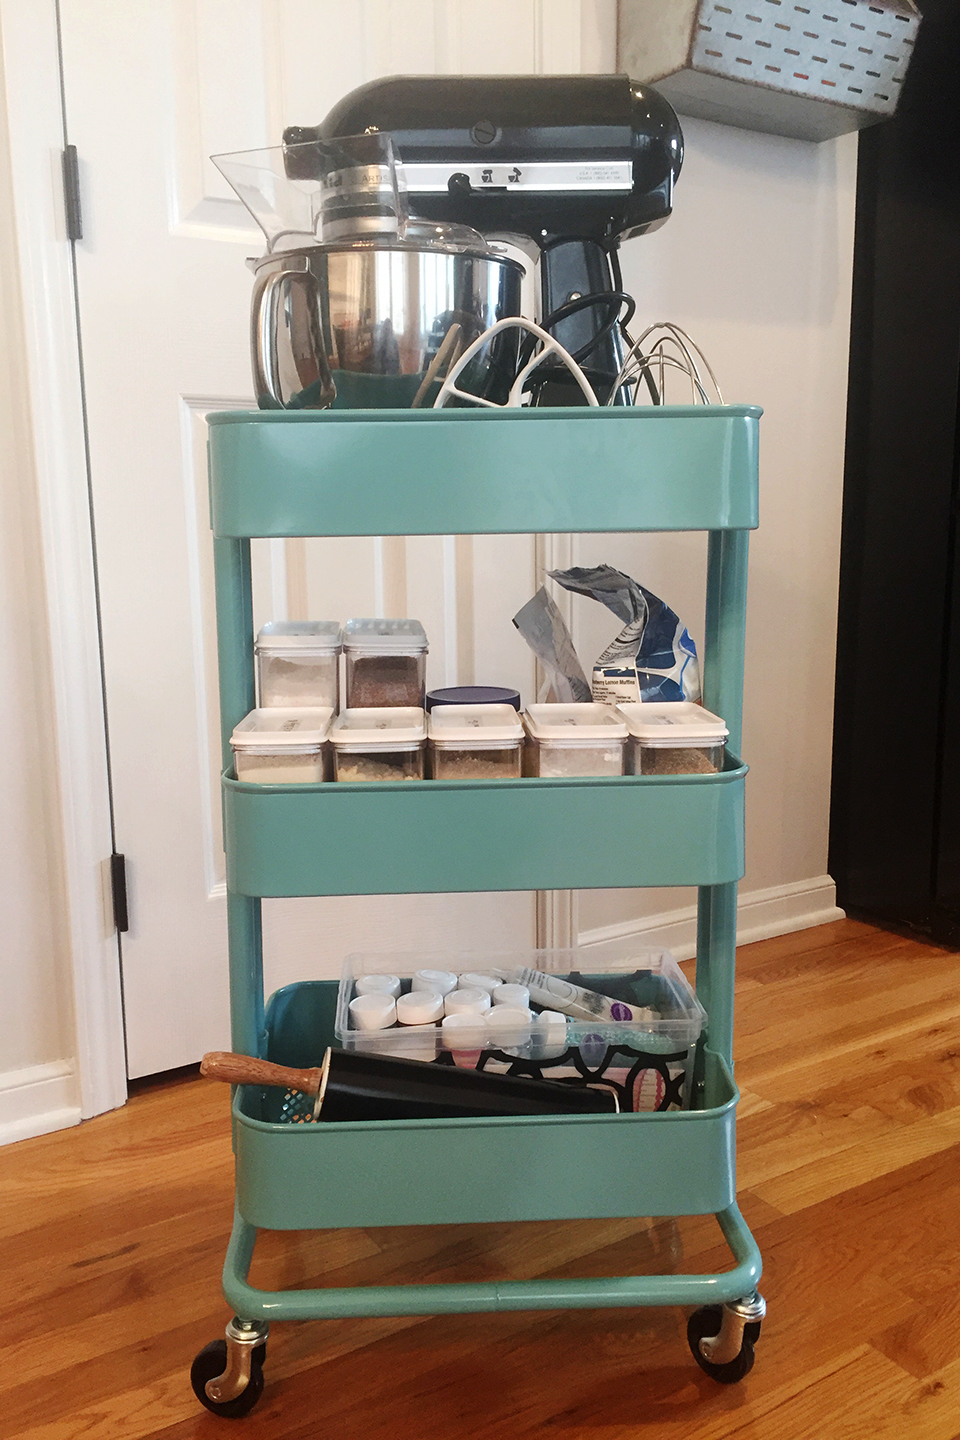 Blue rolling cart with stand mixer and other baking items